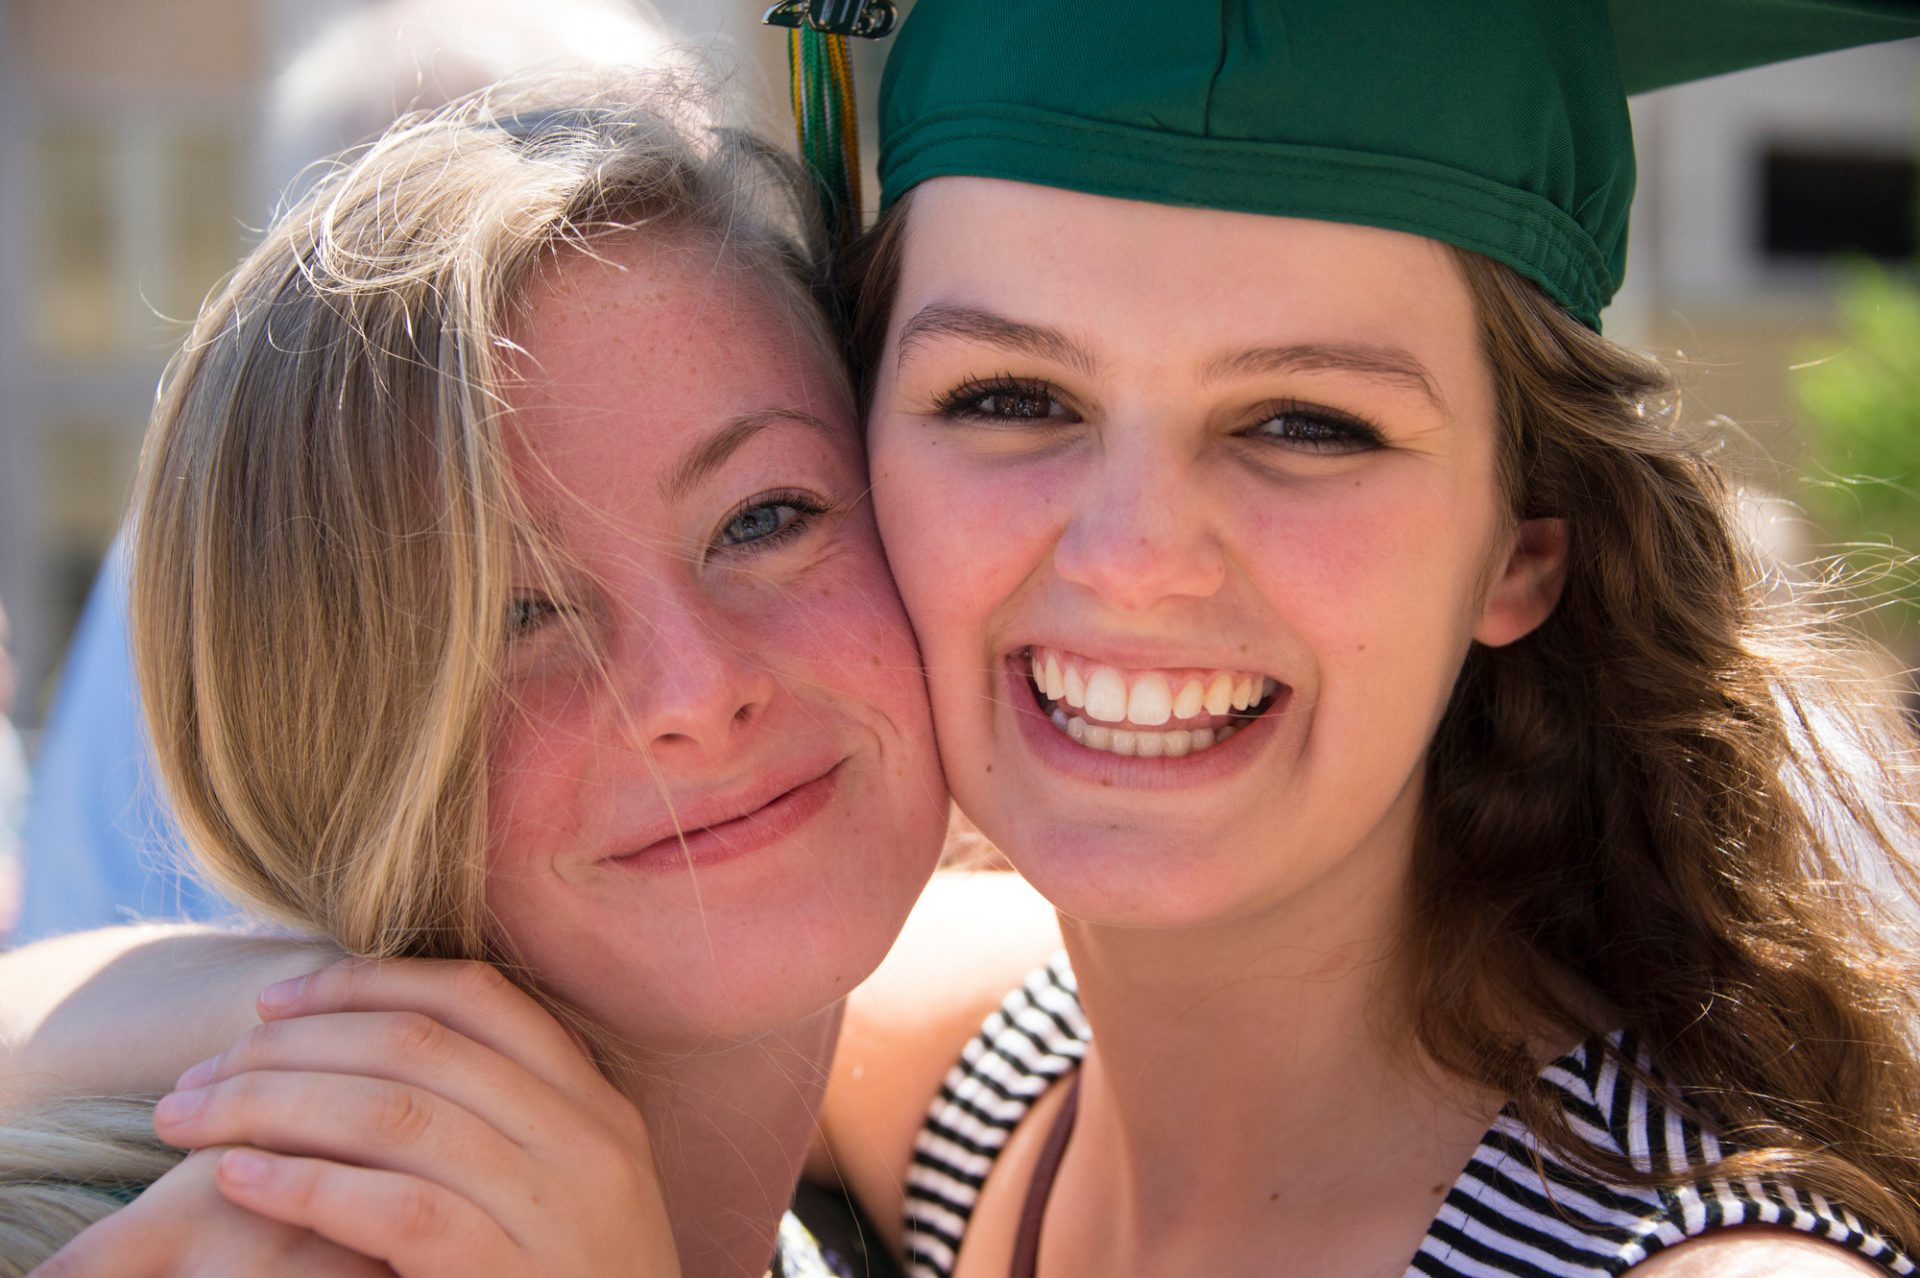 Photo: Two teenage girls hug after their high school graduation ceremony.